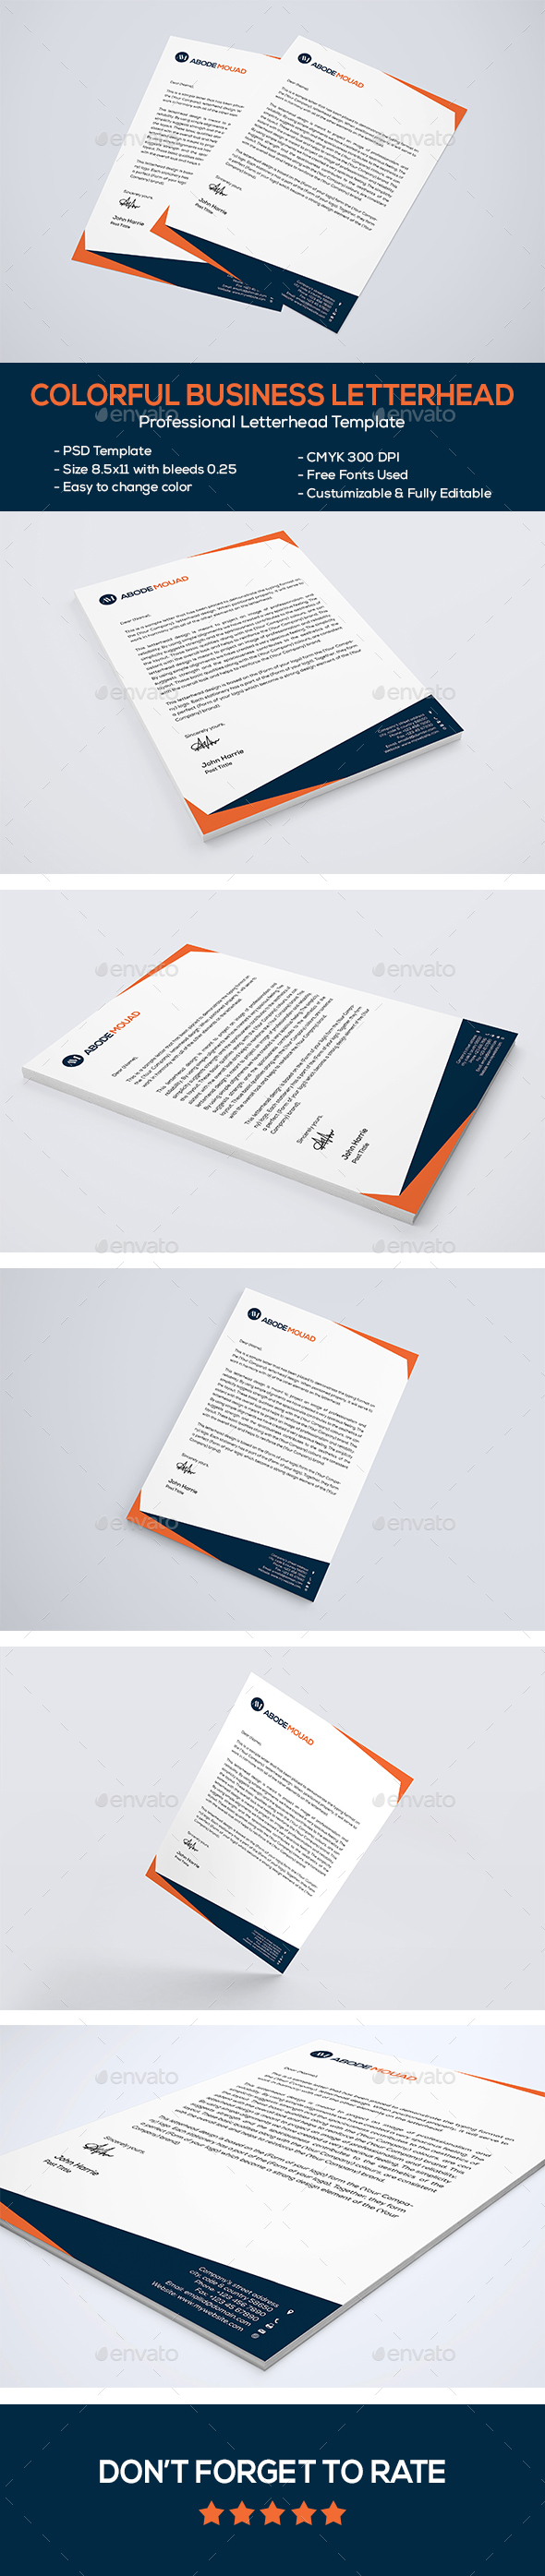 Colorful Business Letterhead - Stationery Print Templates